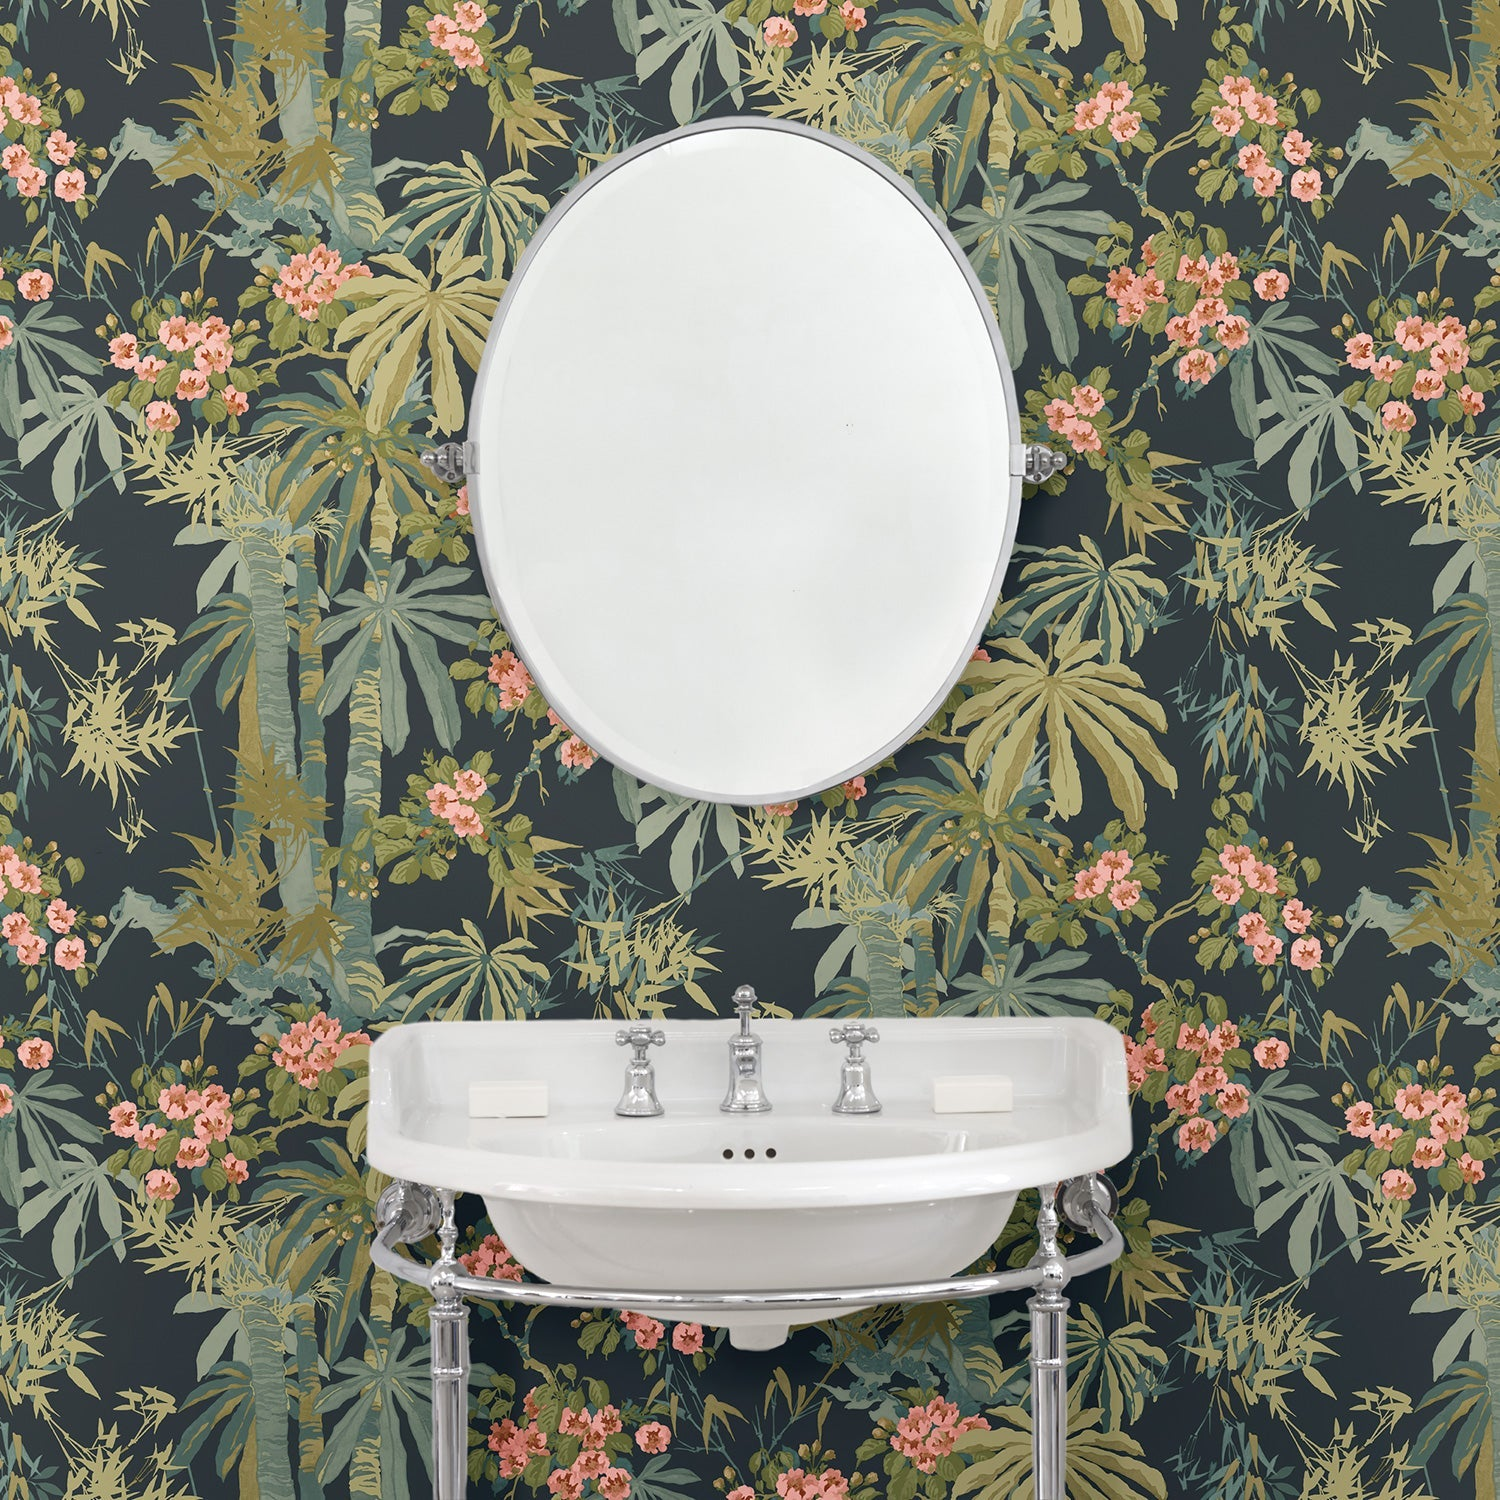 Bathroom featuring a Tropical wallpaper for walls with dark blue background and green palm trees